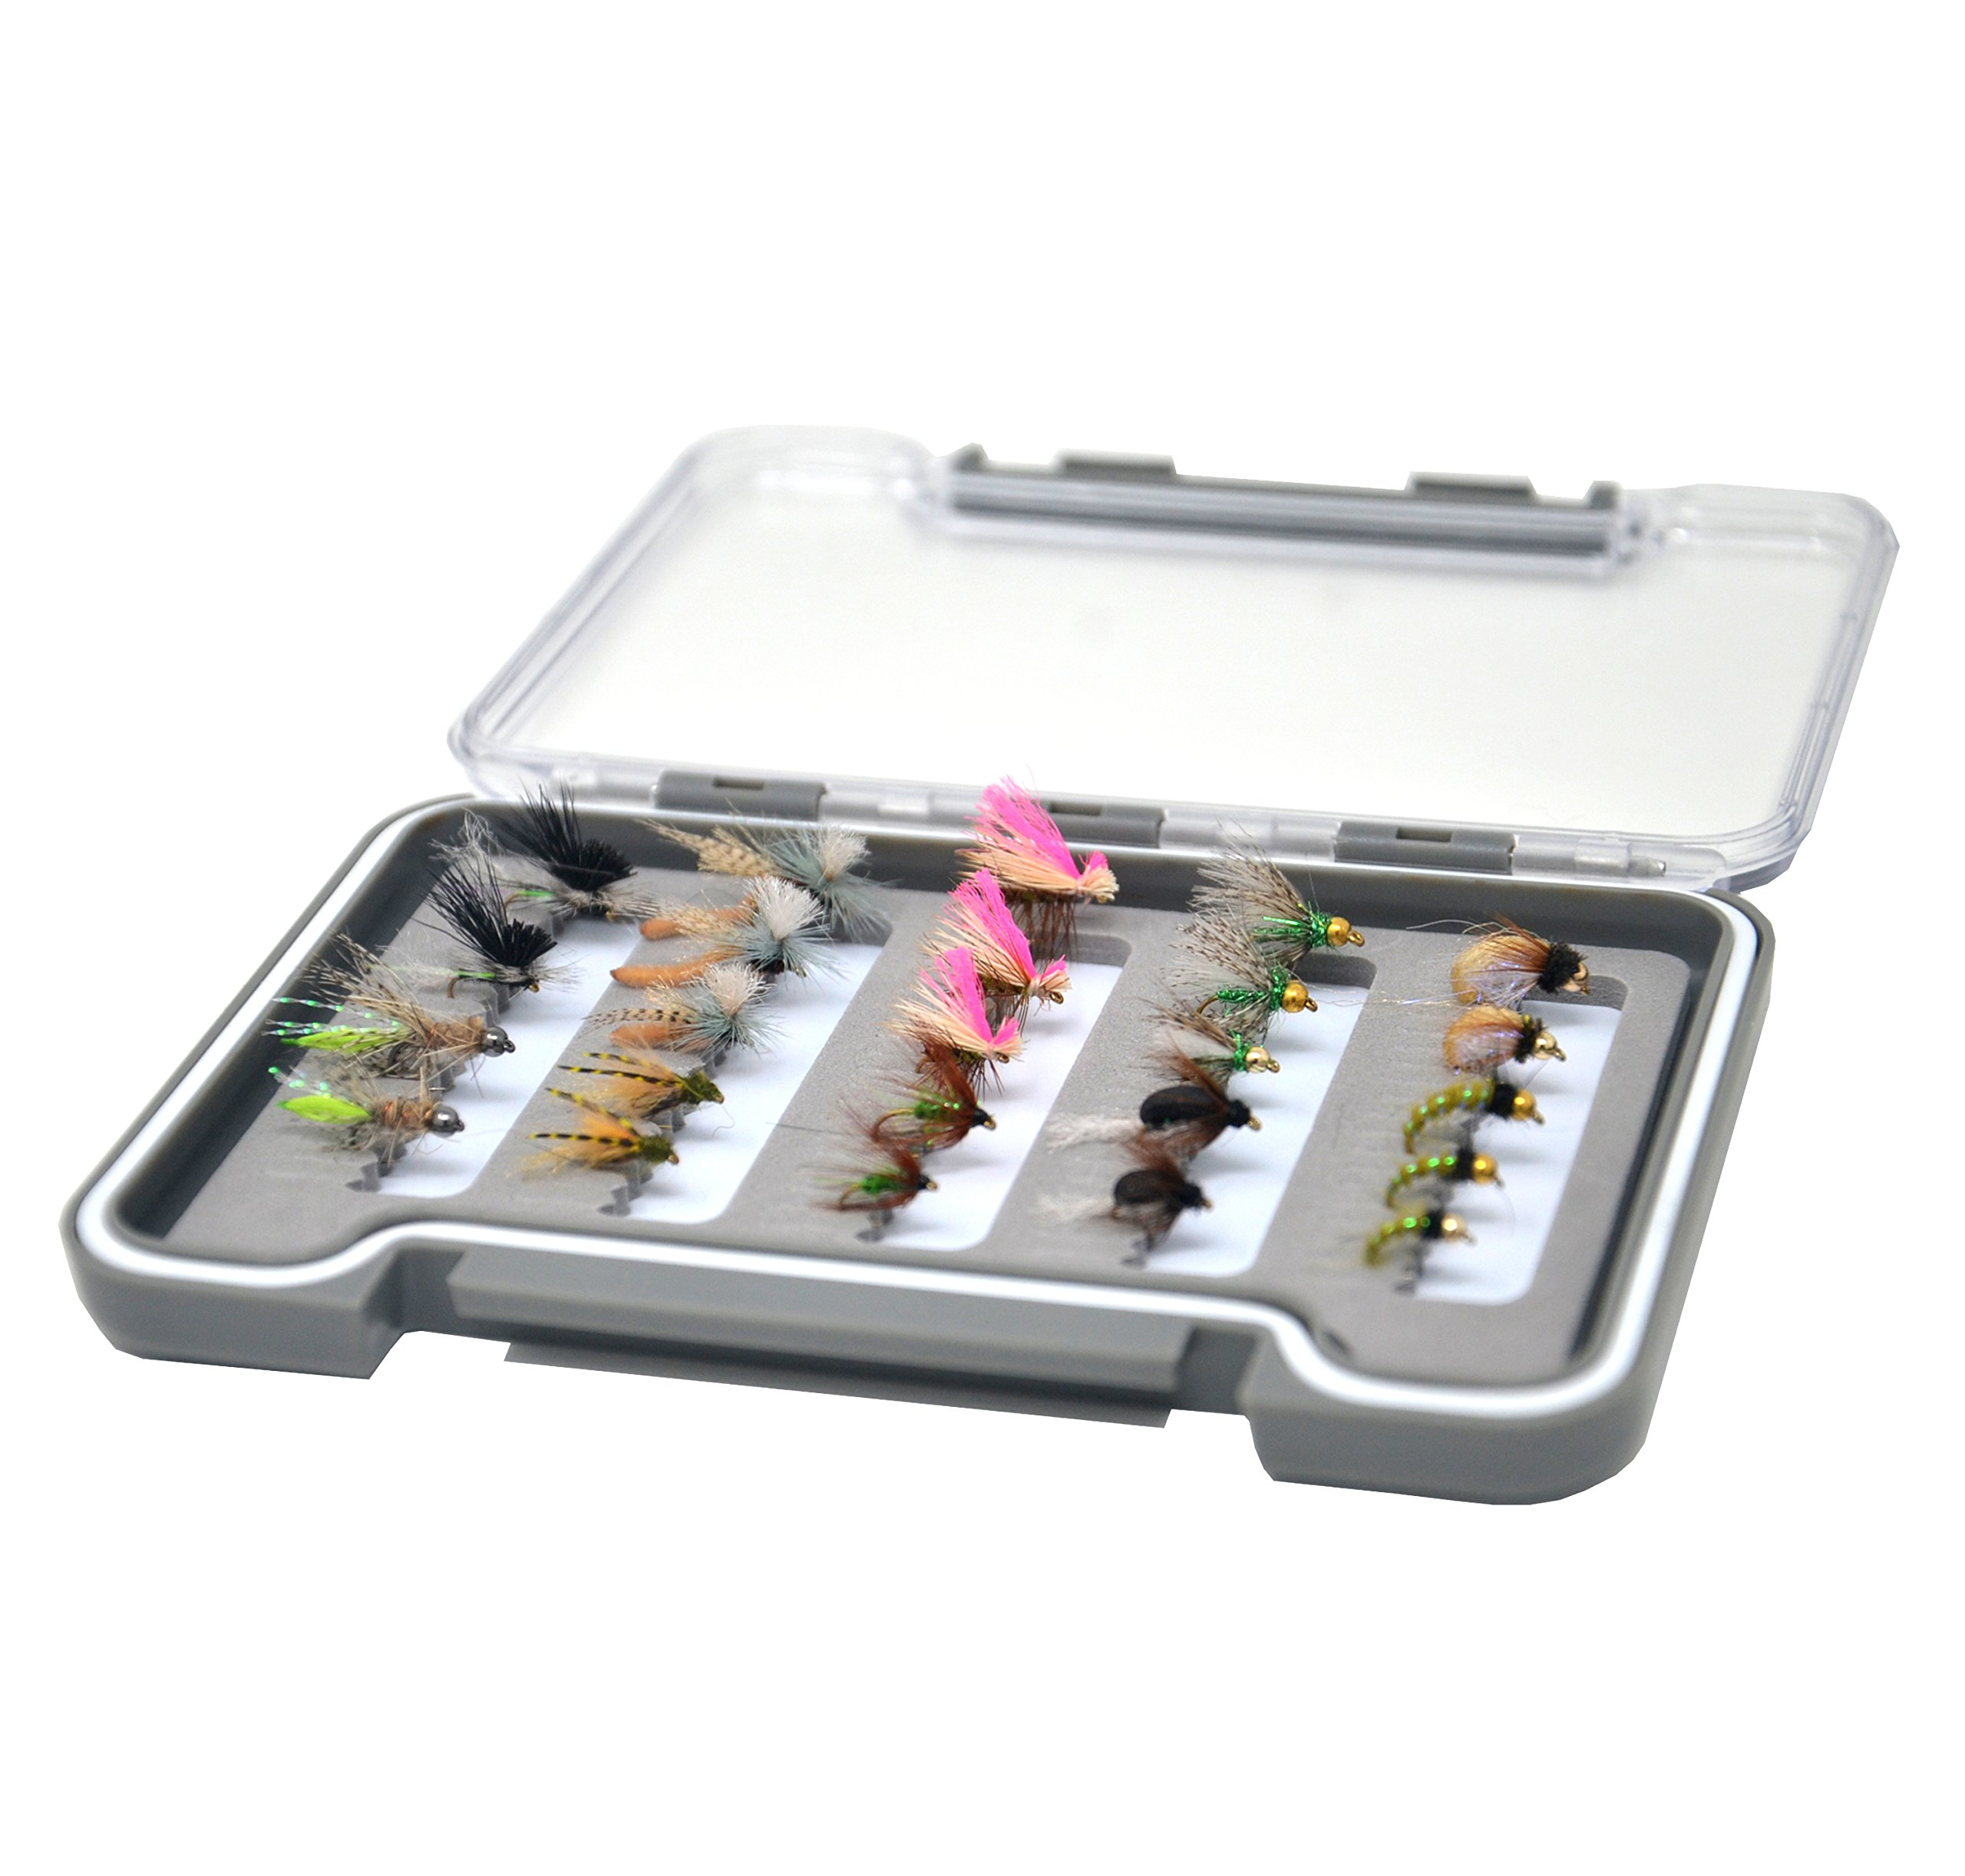 Outdoor Planet 24Pieces Caddis Dry Fly Lure Assotment for Trout Fly Fishing + Slim Waterproof Fly Box by Outdoor Planet